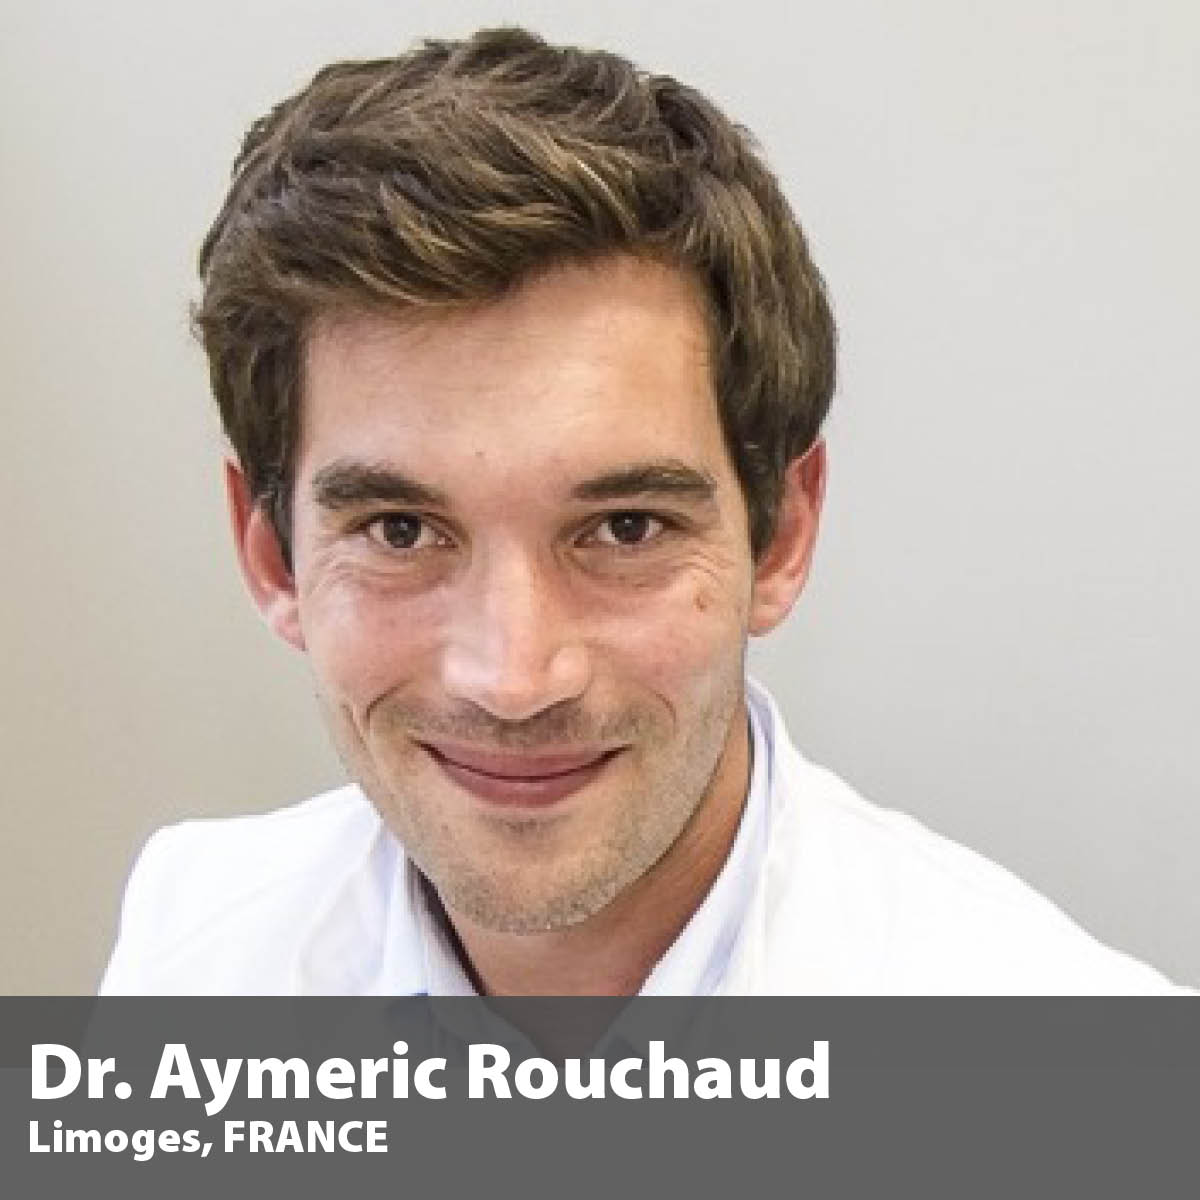 Aymeric Rouchaud of the EYMINT team